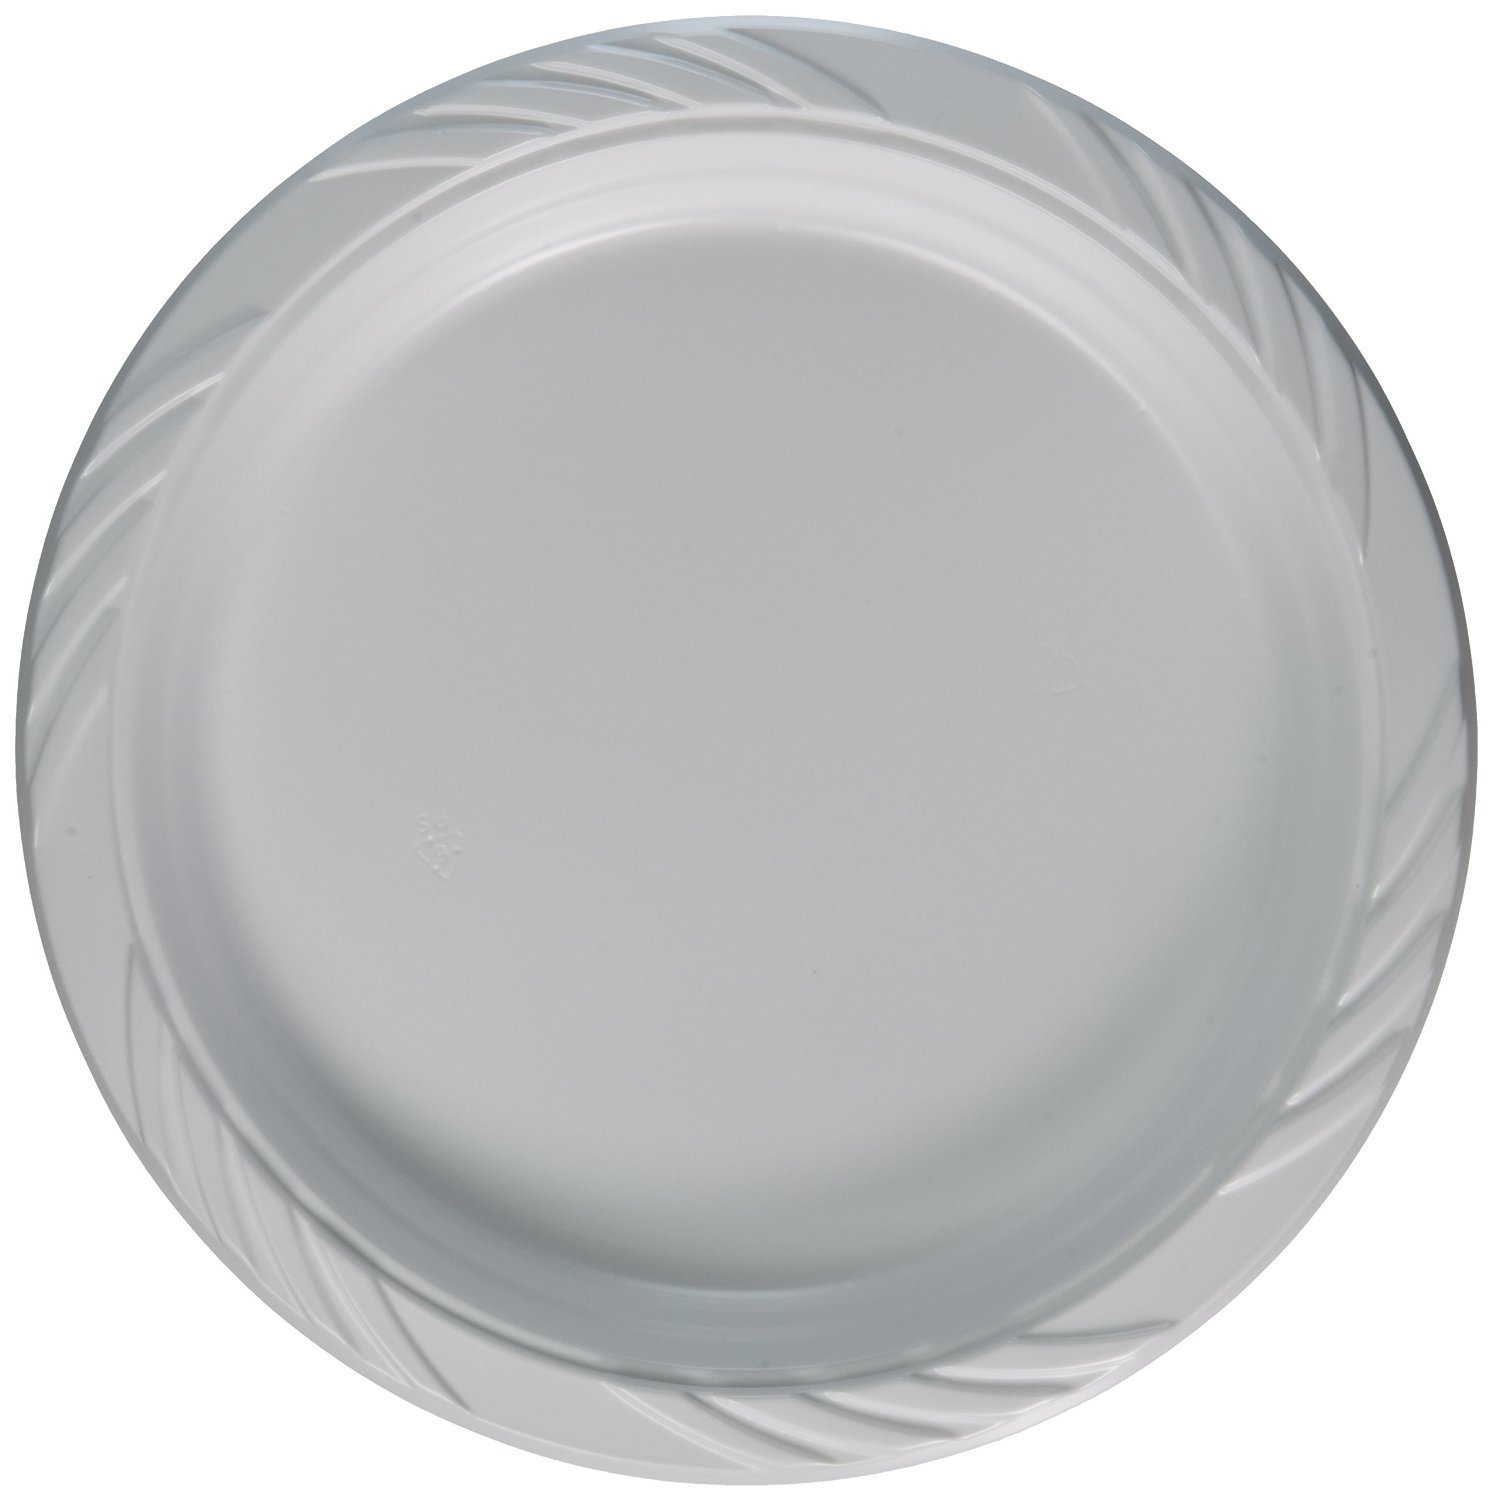 Amazon.com Blue Sky 300 Count Disposable Plastic Plates 9 Inch White Kitchen u0026 Dining  sc 1 st  Amazon.com & Amazon.com: Blue Sky 300 Count Disposable Plastic Plates 9 Inch ...